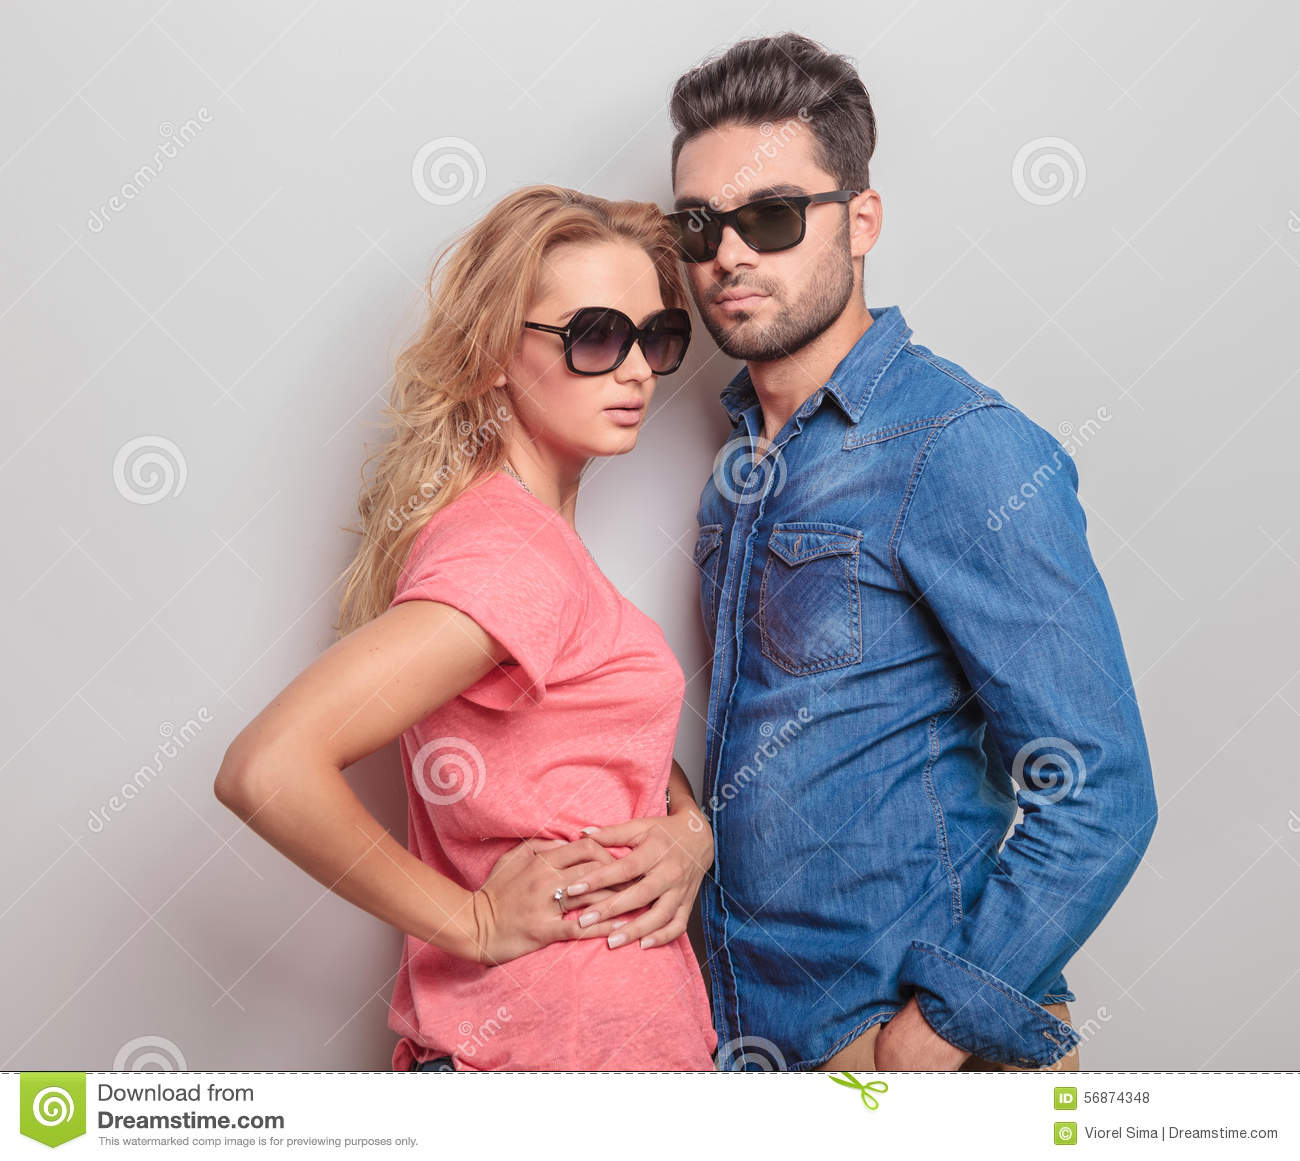 Young Casual Couple Posing, Both Wearing Sunglasses. Stock